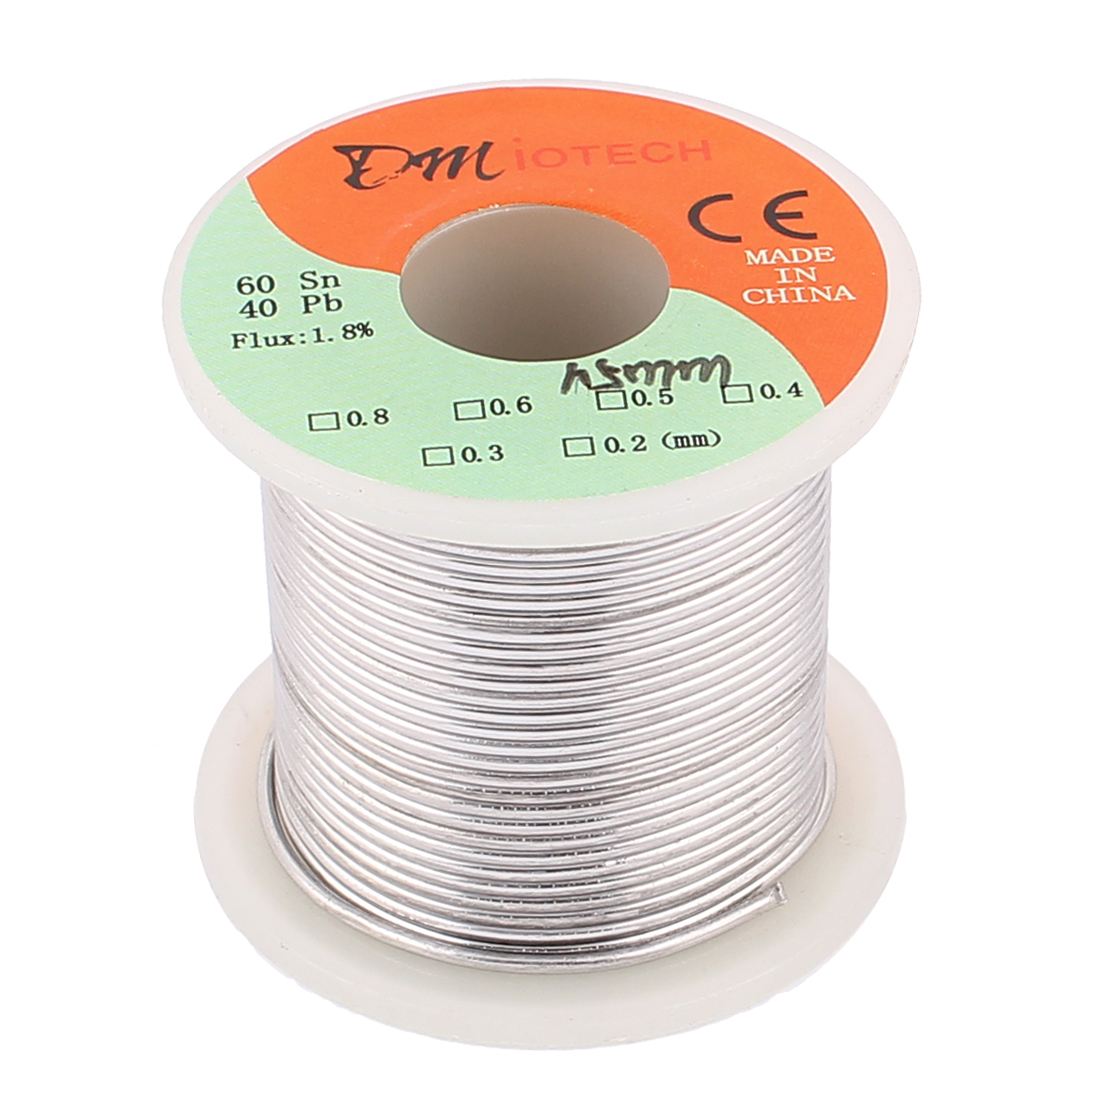 1.5mm Rosin Core Solder Tin Lead Solder Wire 60/40 for Electrical Soldering 200g